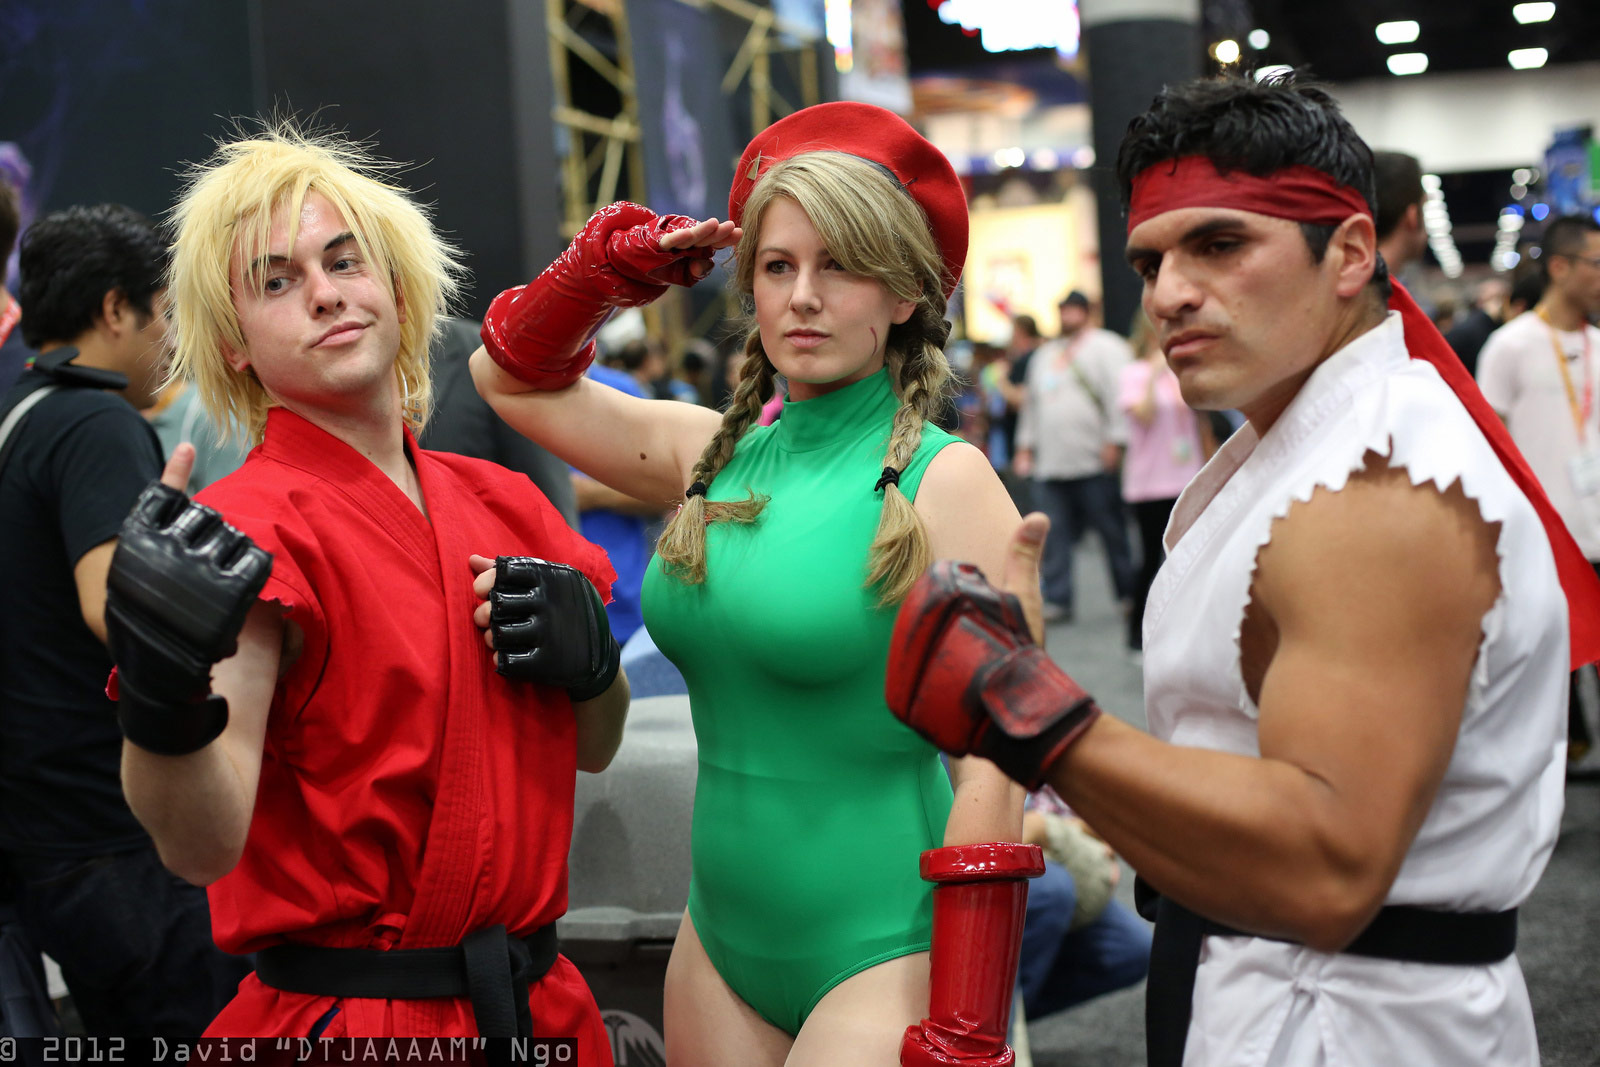 Fighting game cosplay gallery image #8